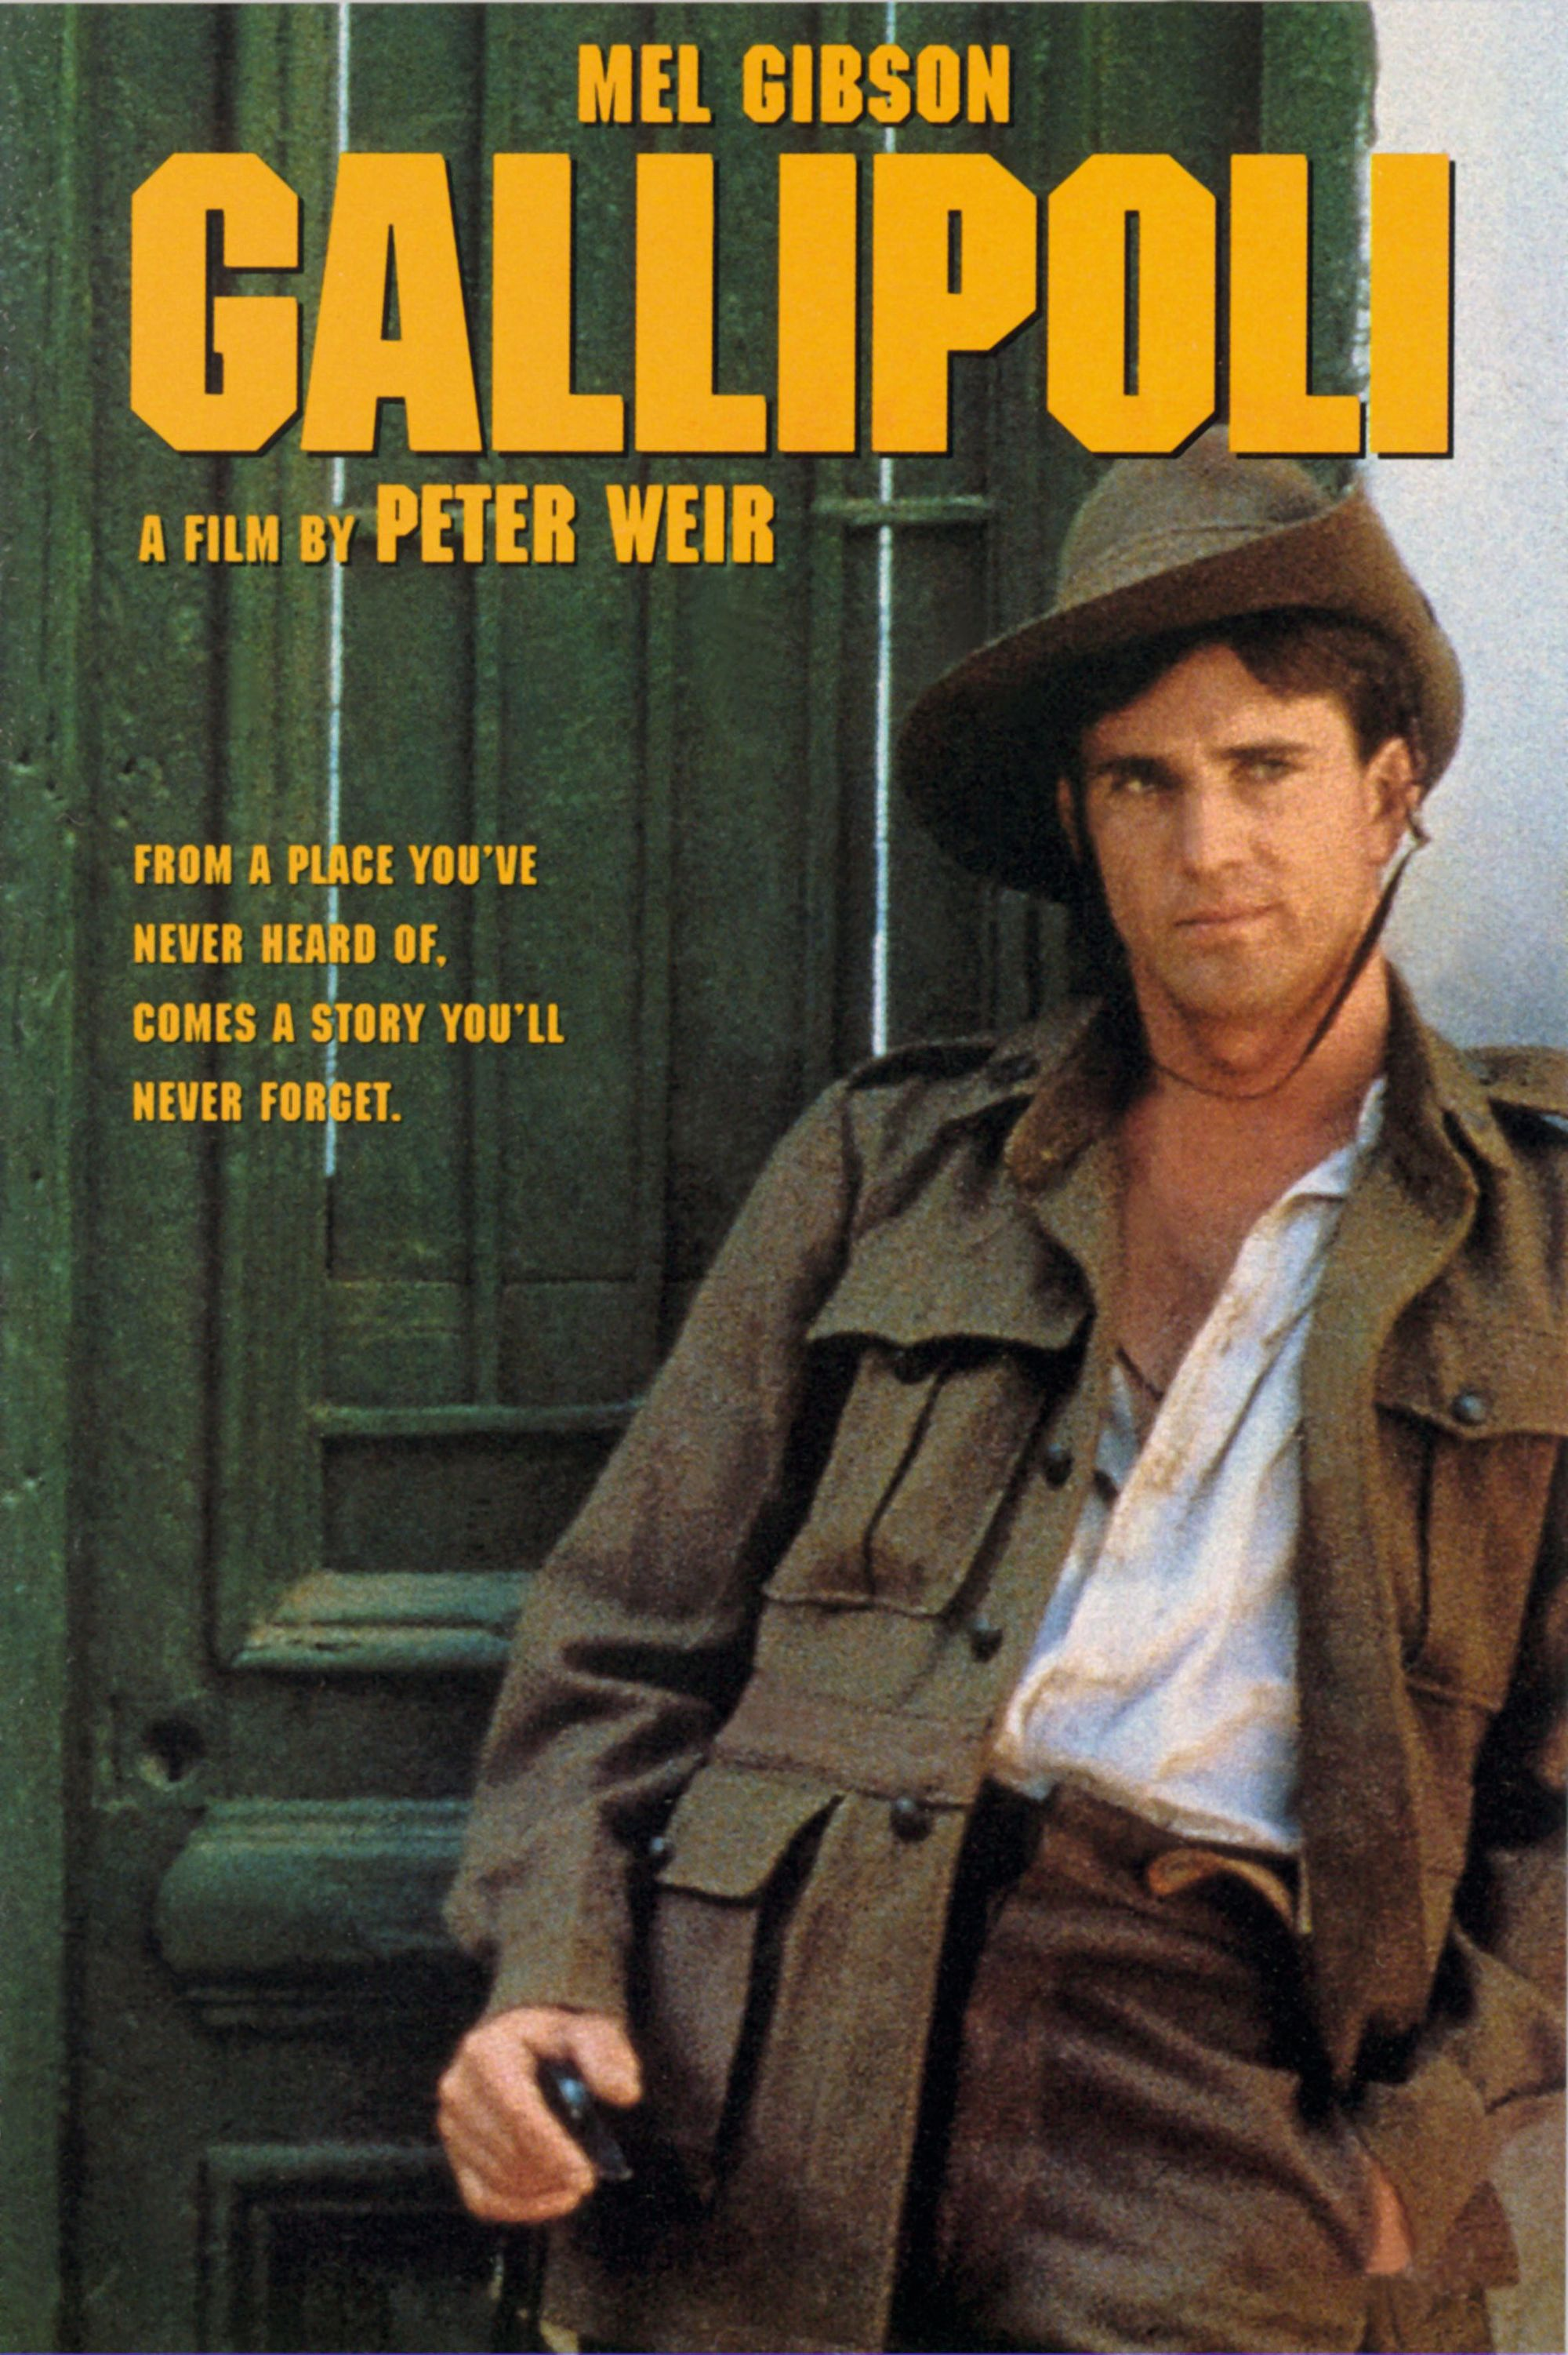 Peter Weir, Gallipoli, 1981